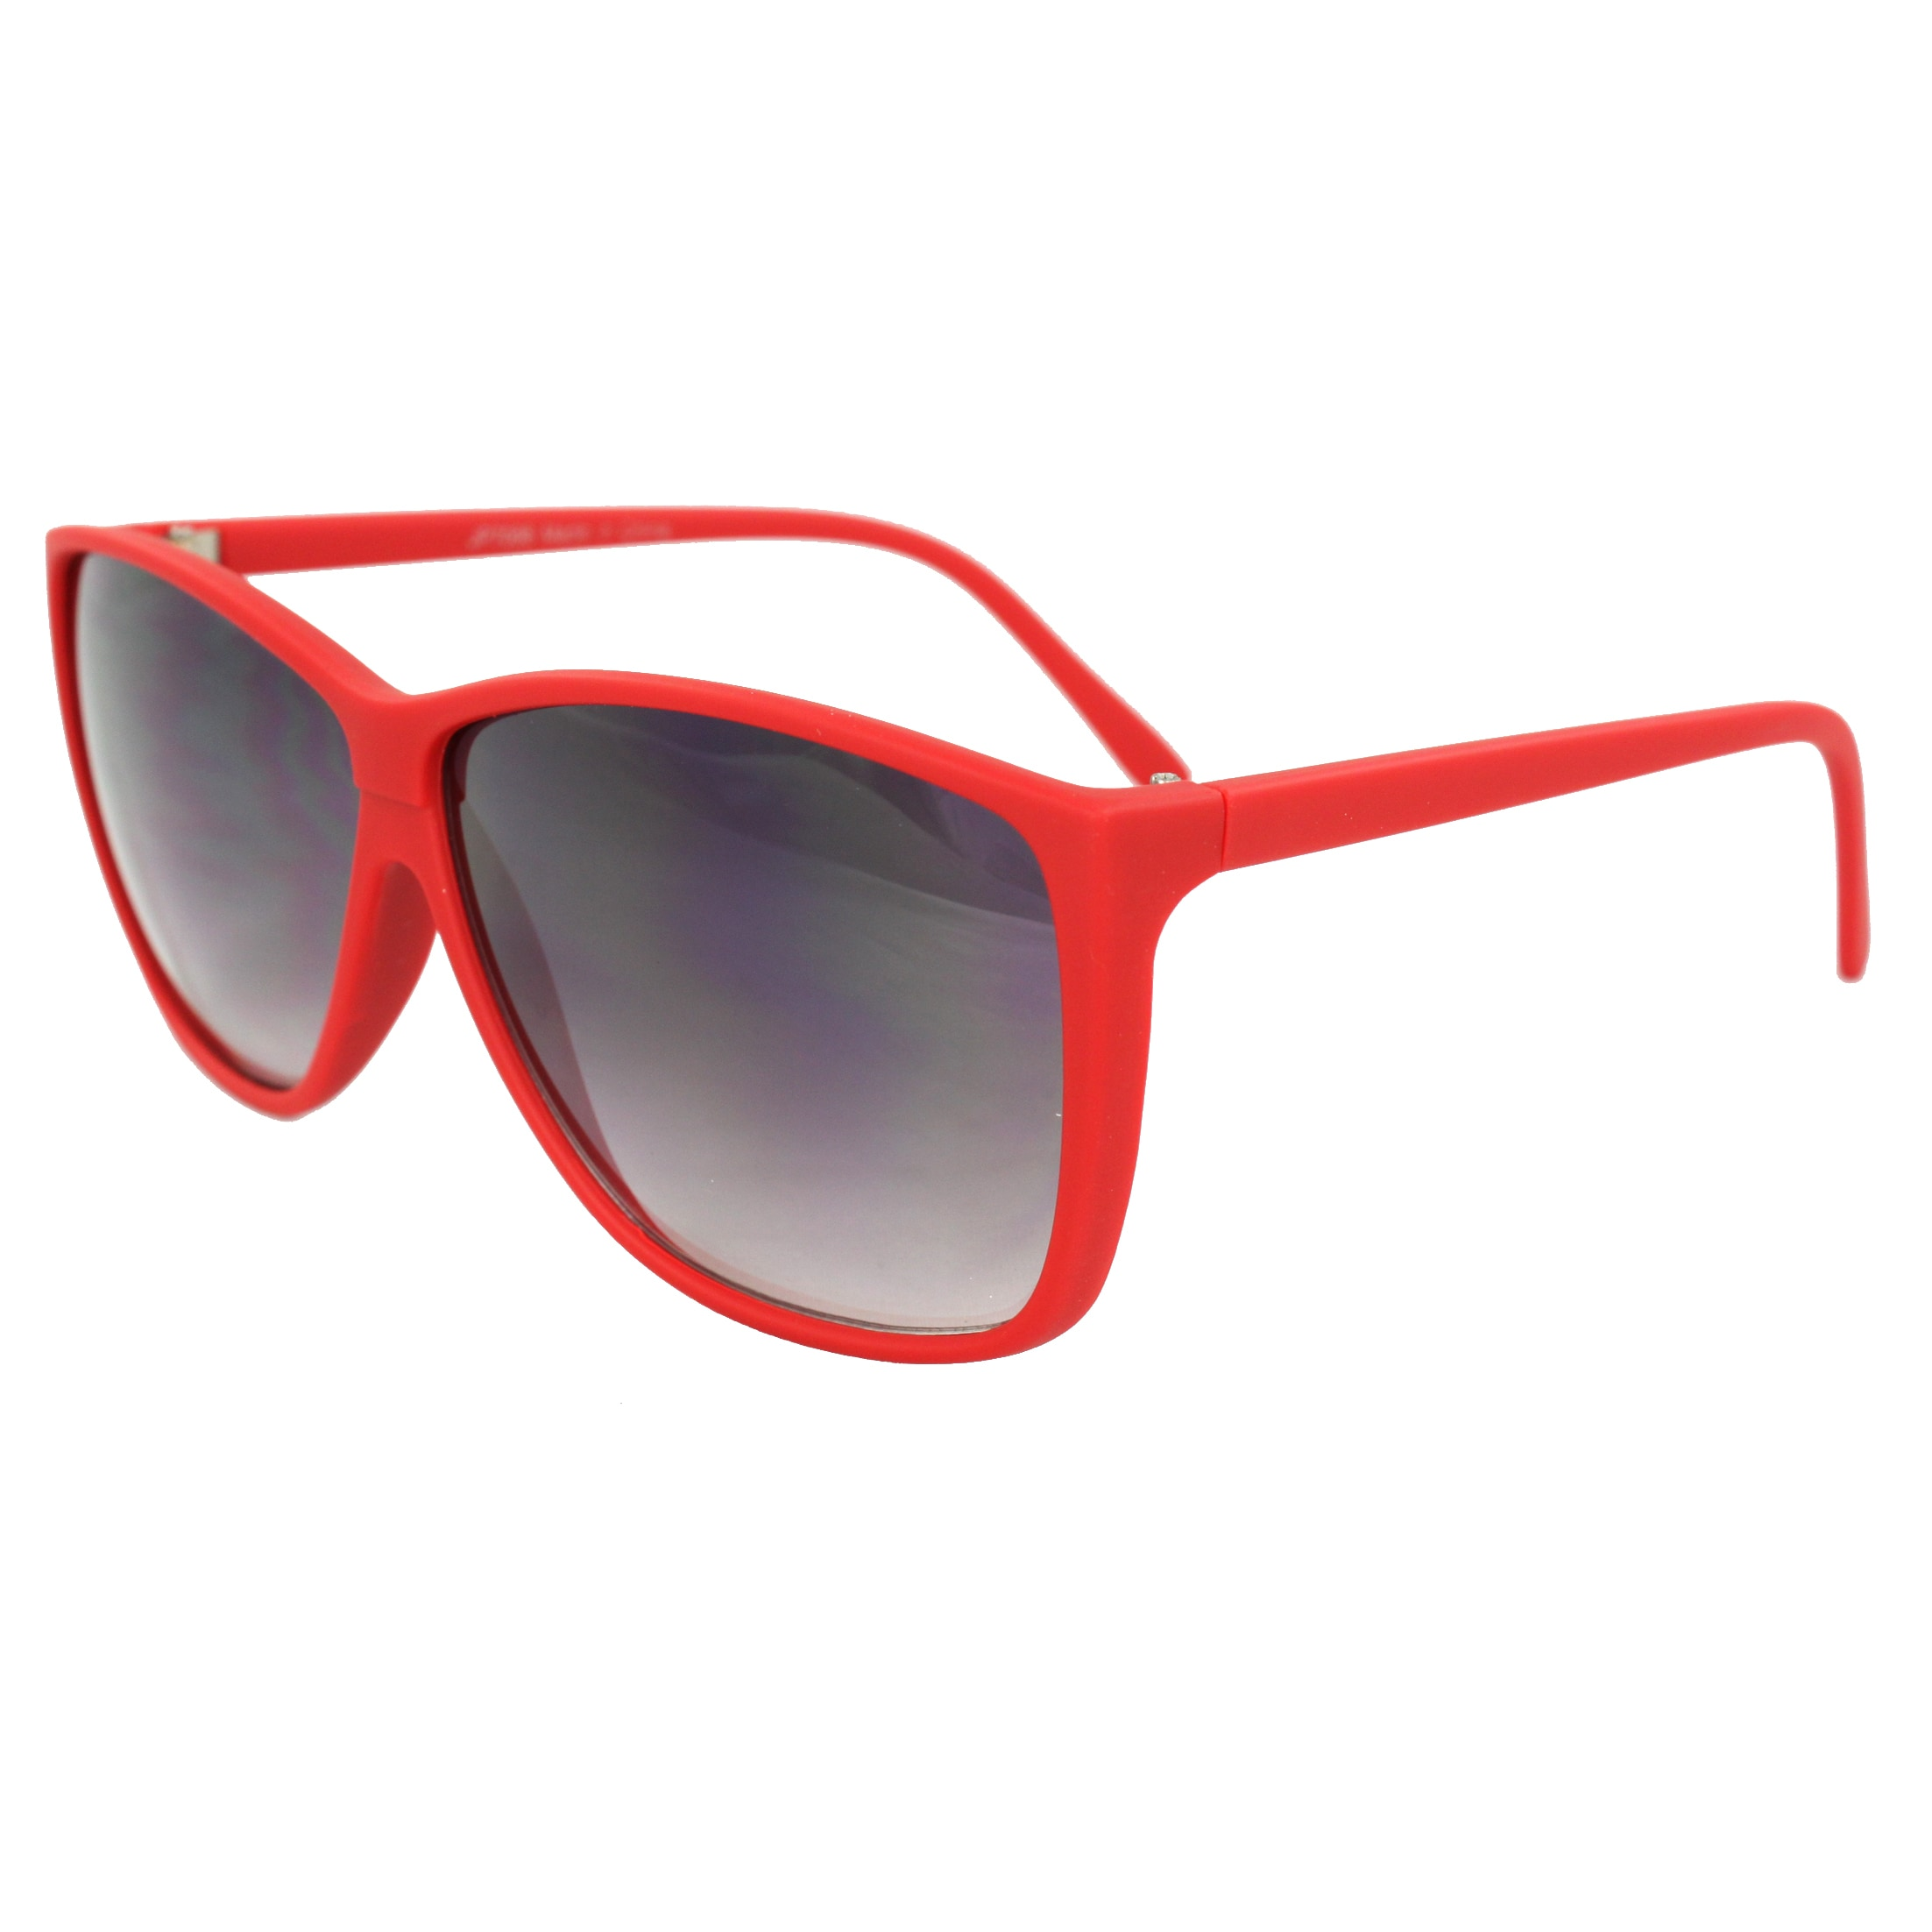 Women's Red Square Fashion Sunglasses